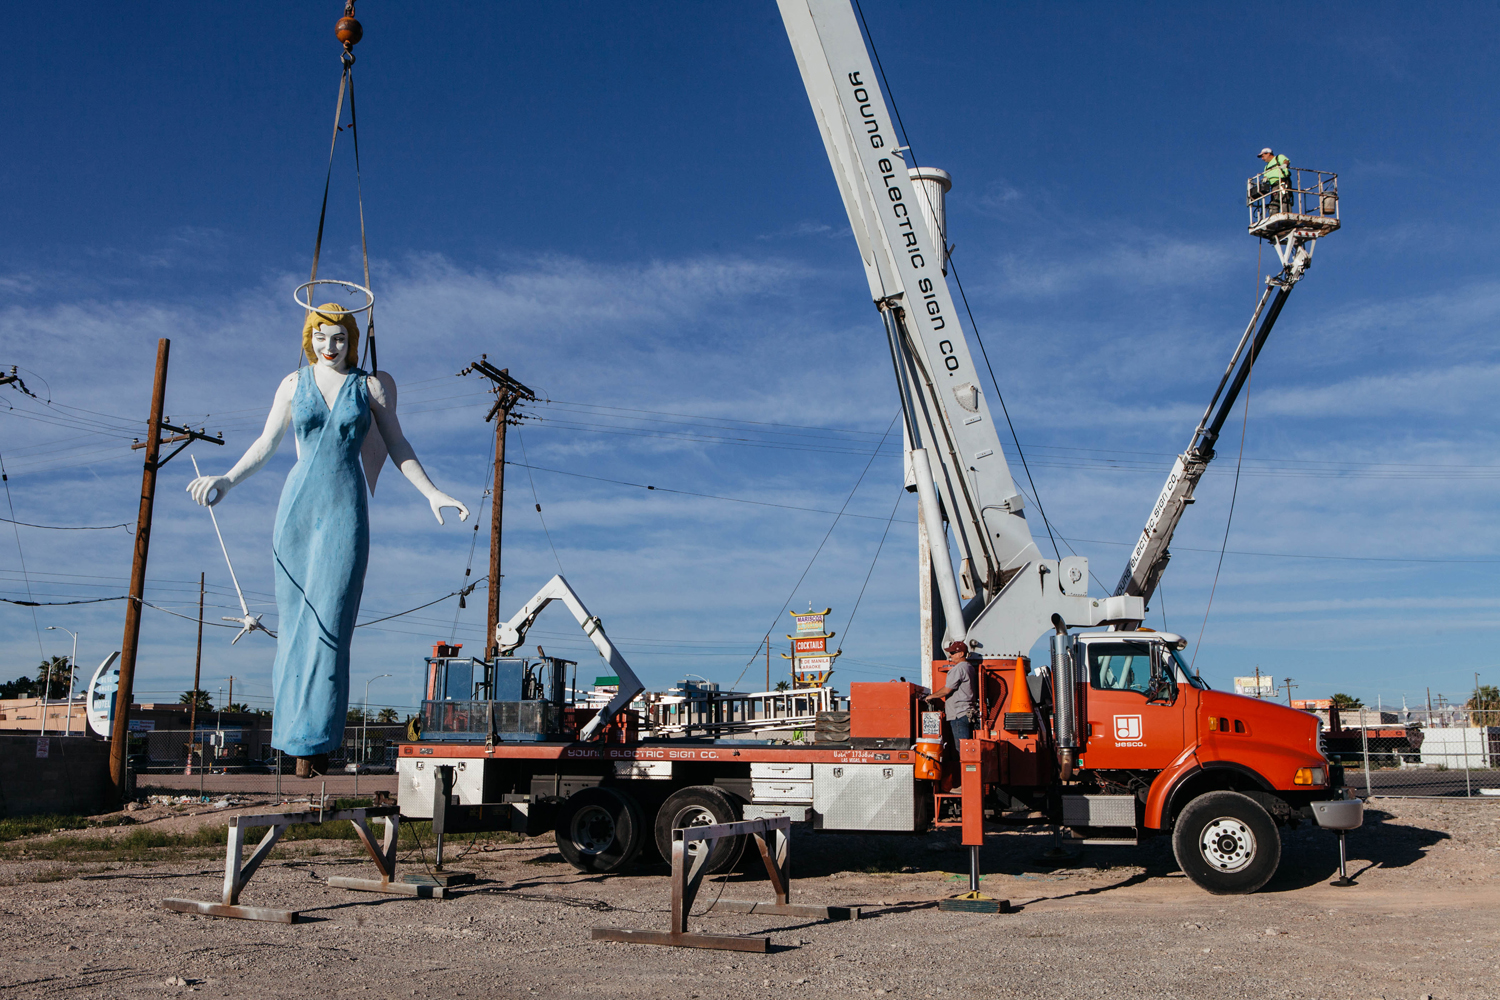 the blue angel is coming down to earth - las vegas weekly